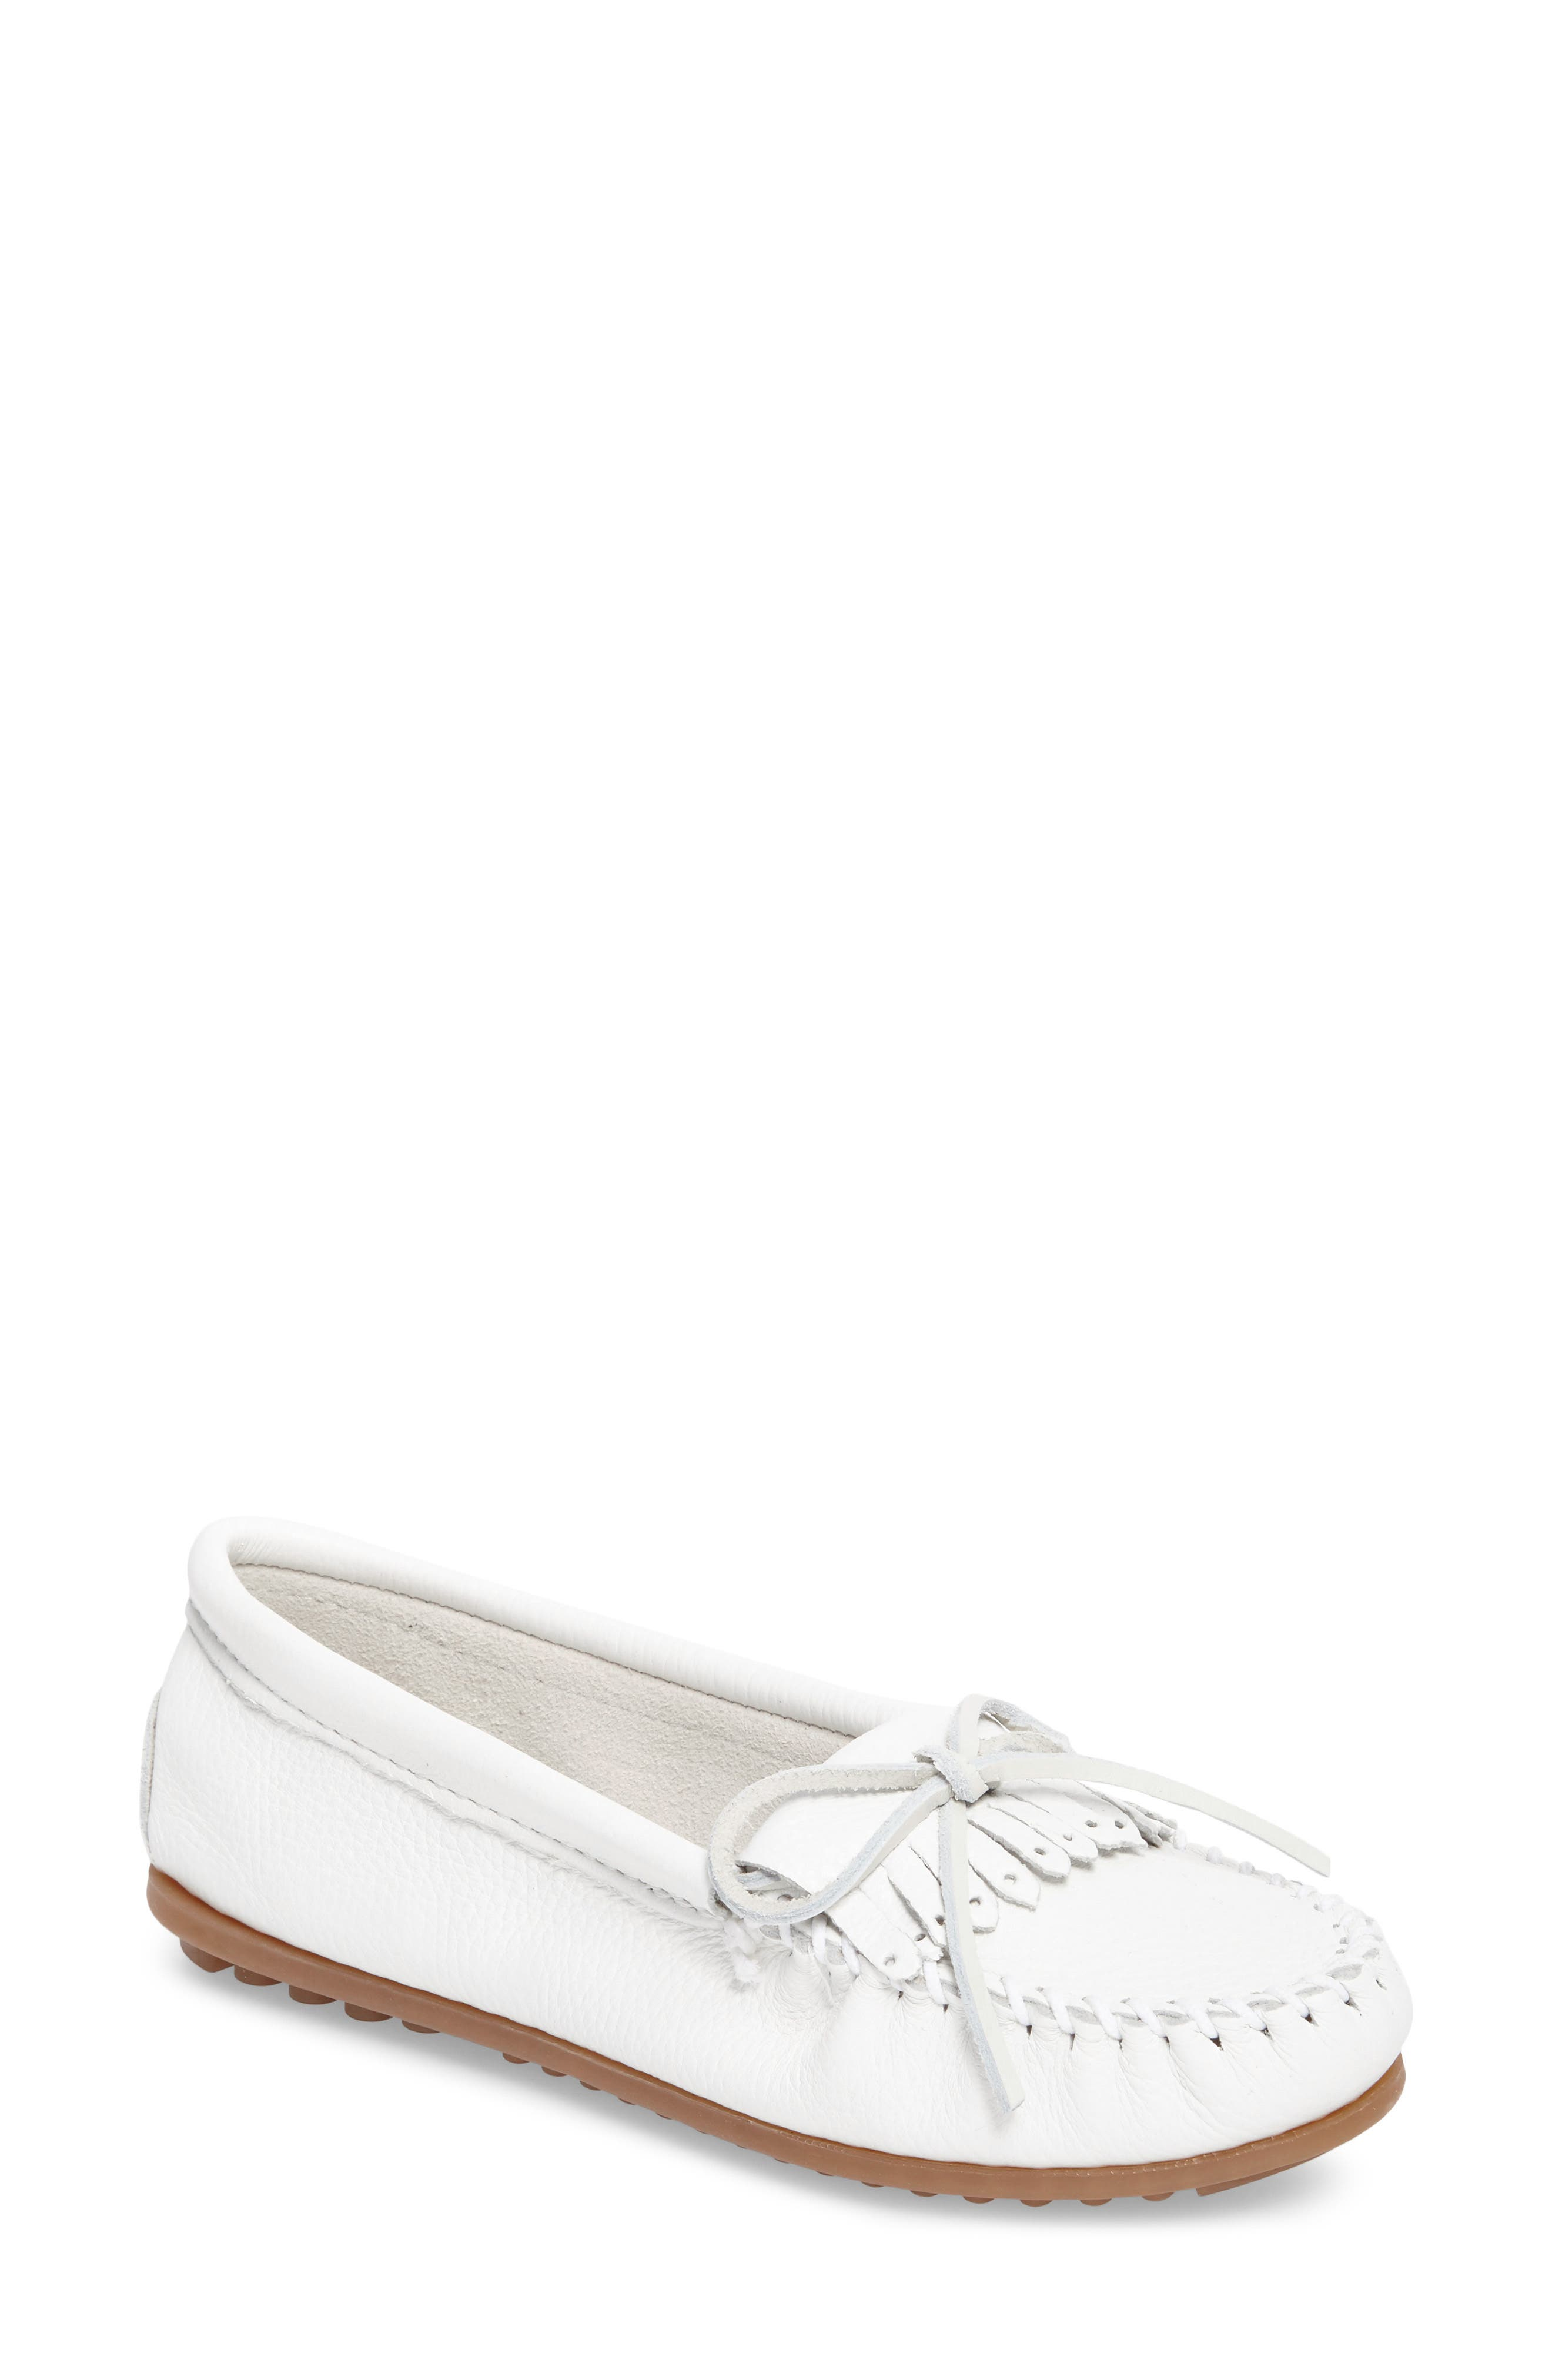 Kilty Moccasin,                         Main,                         color, White Leather